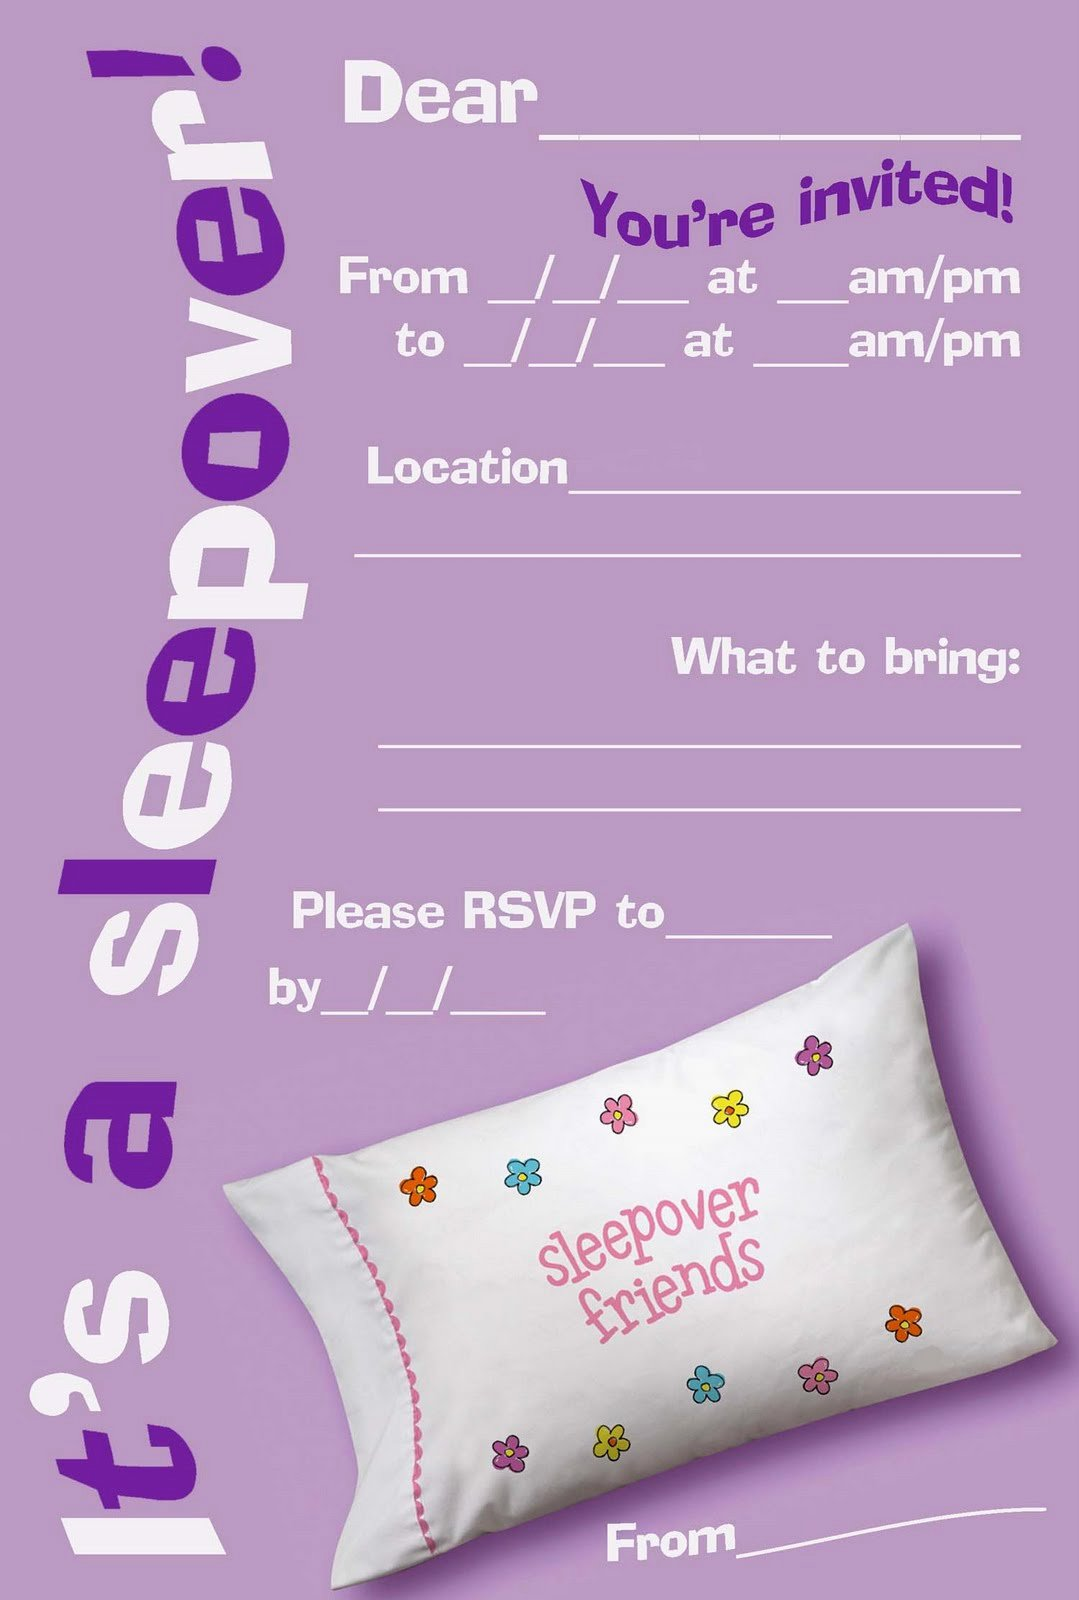 Pajama Party Invitations Free Printable Unique 50 Beautiful Slumber Party Invitations